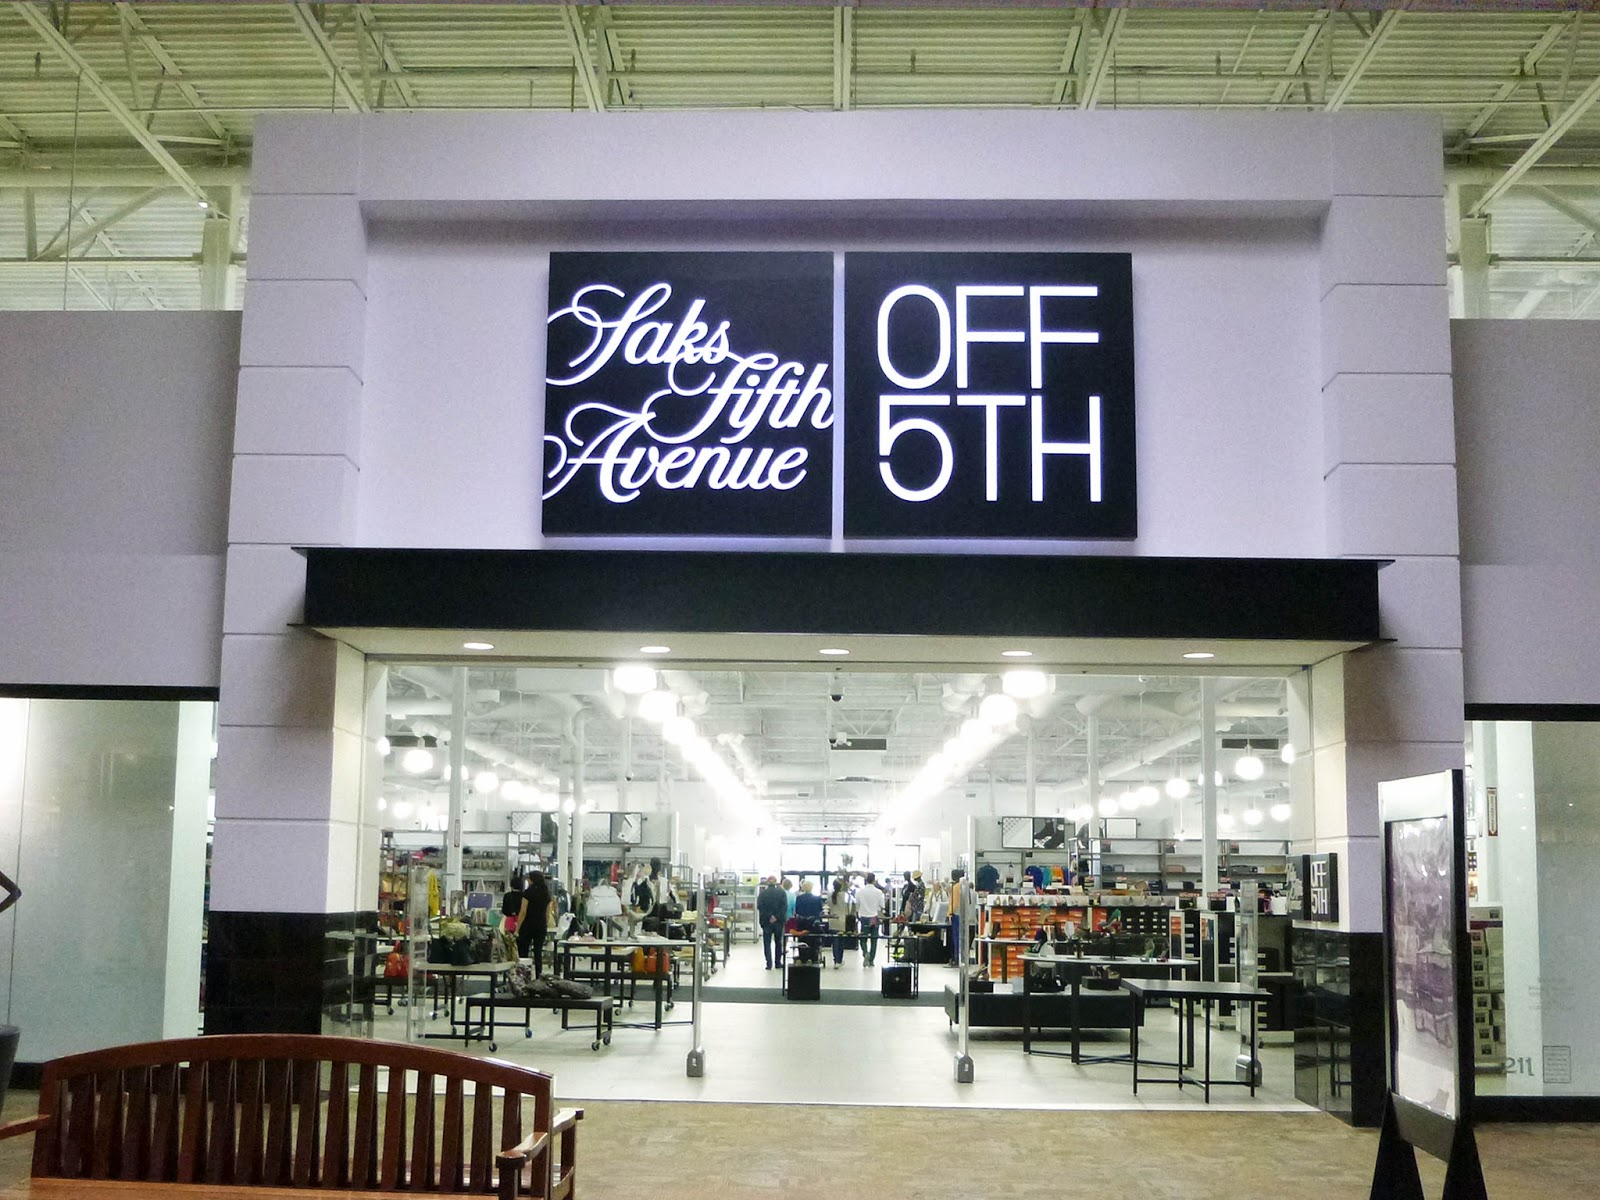 How to use Saks Fifth Avenue OFF 5th coupons Saks OFF 5th is your destination for designer clothing and accessories at a discount! Shop your favorite brands with everyday savings of up to 55% off.